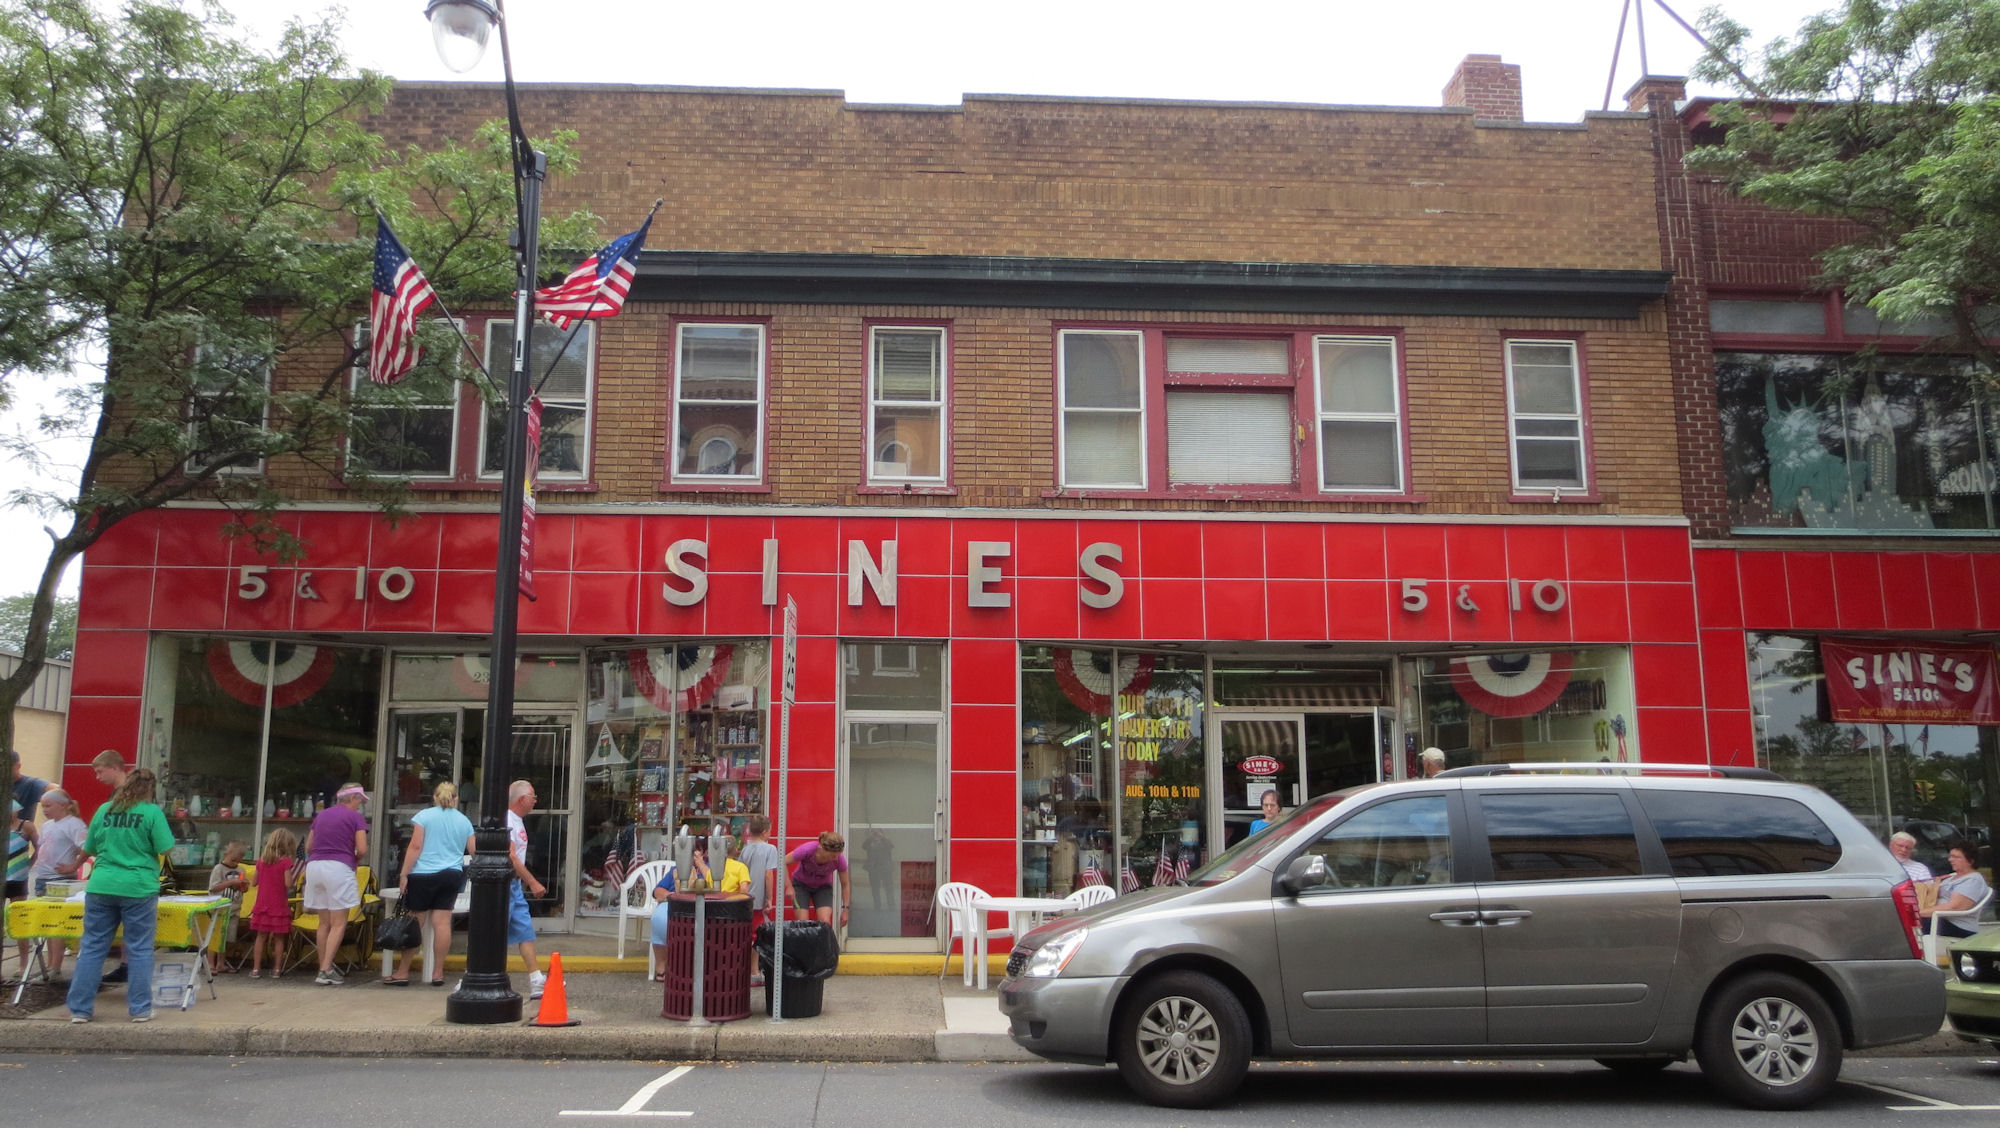 Celebrating 100 Years! Sine's 5 & 10 Cent Store